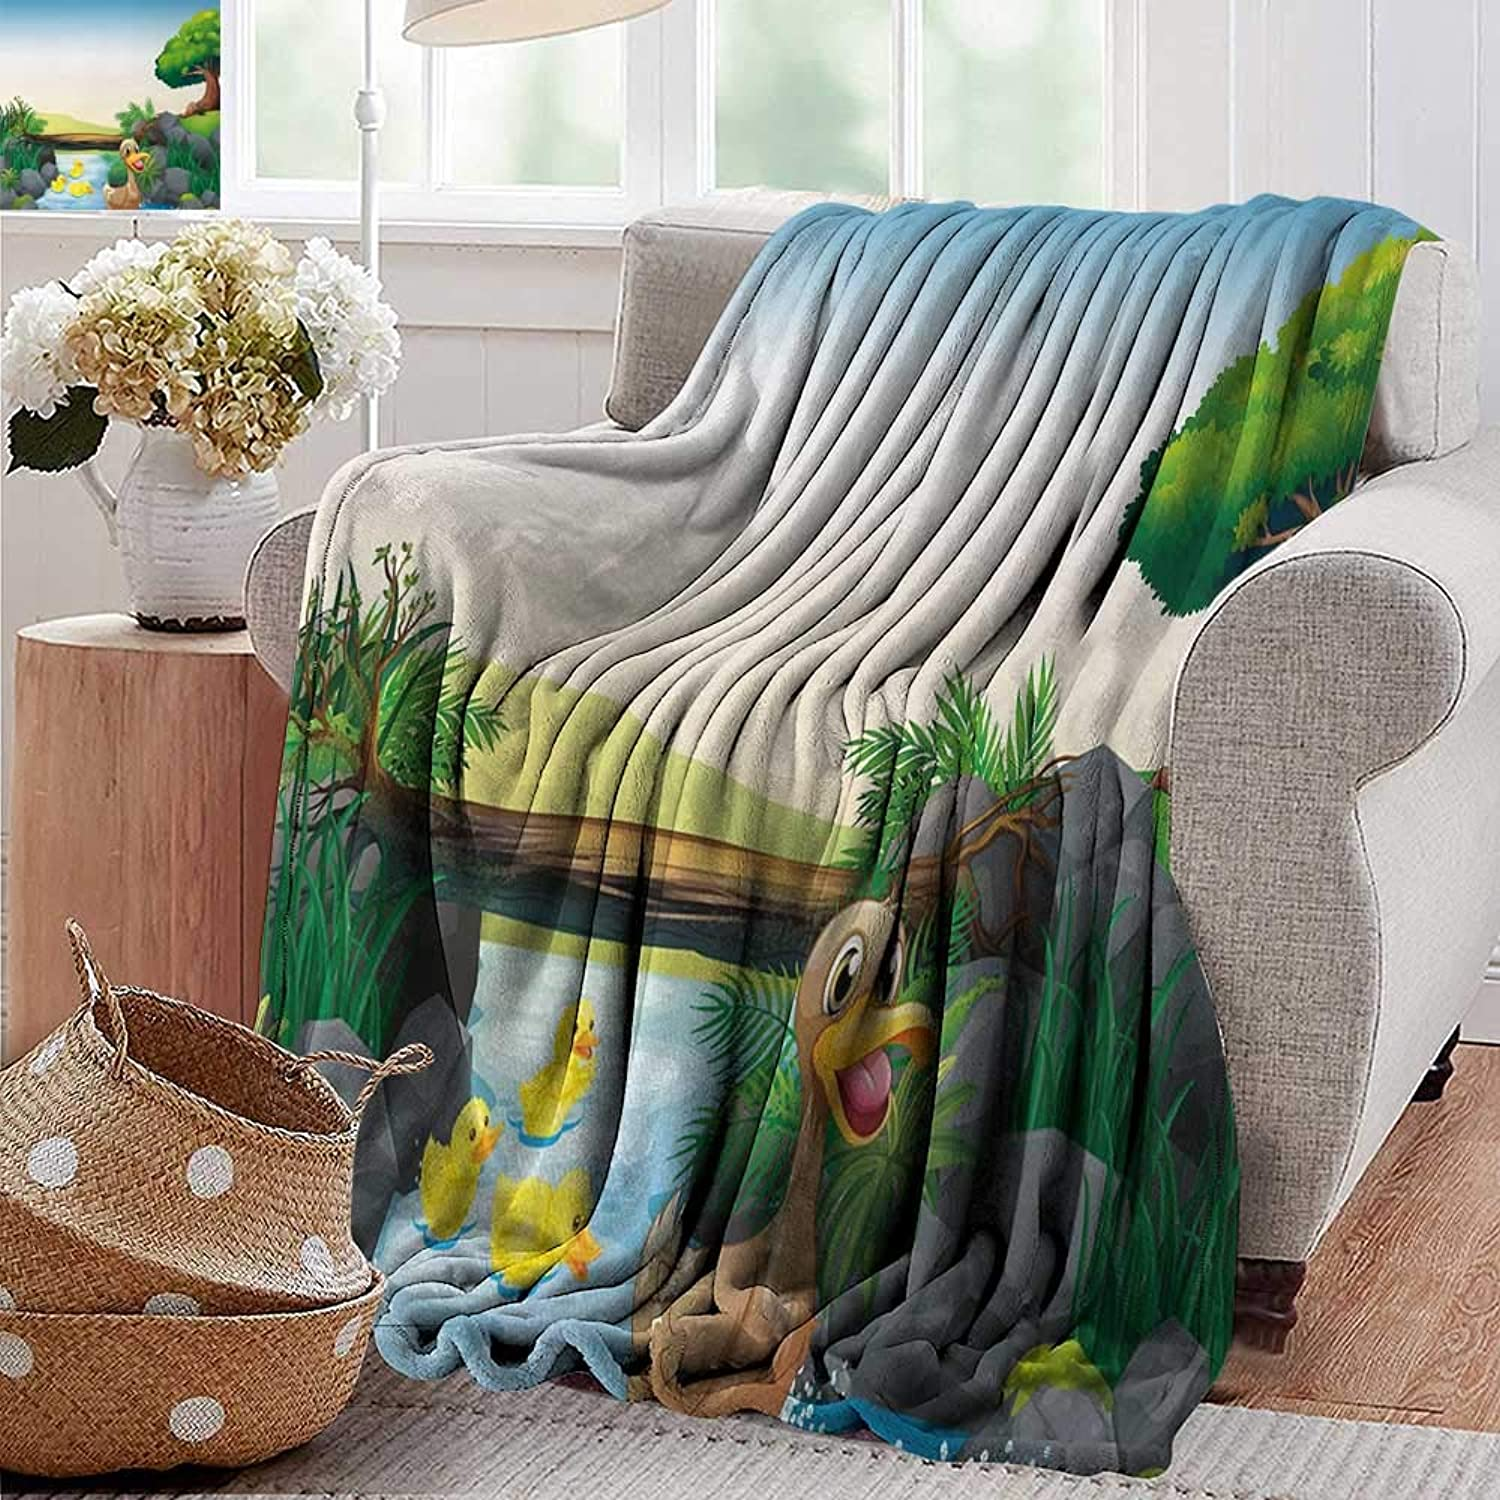 PearlRolan Cool Blanket,Rubber Duck,Cartoon Mother and Ducklings River Kids Fun Farm Animals Print Outdoor Feathers,Multicolor,for Bed & Couch Sofa Easy Care 35 x60